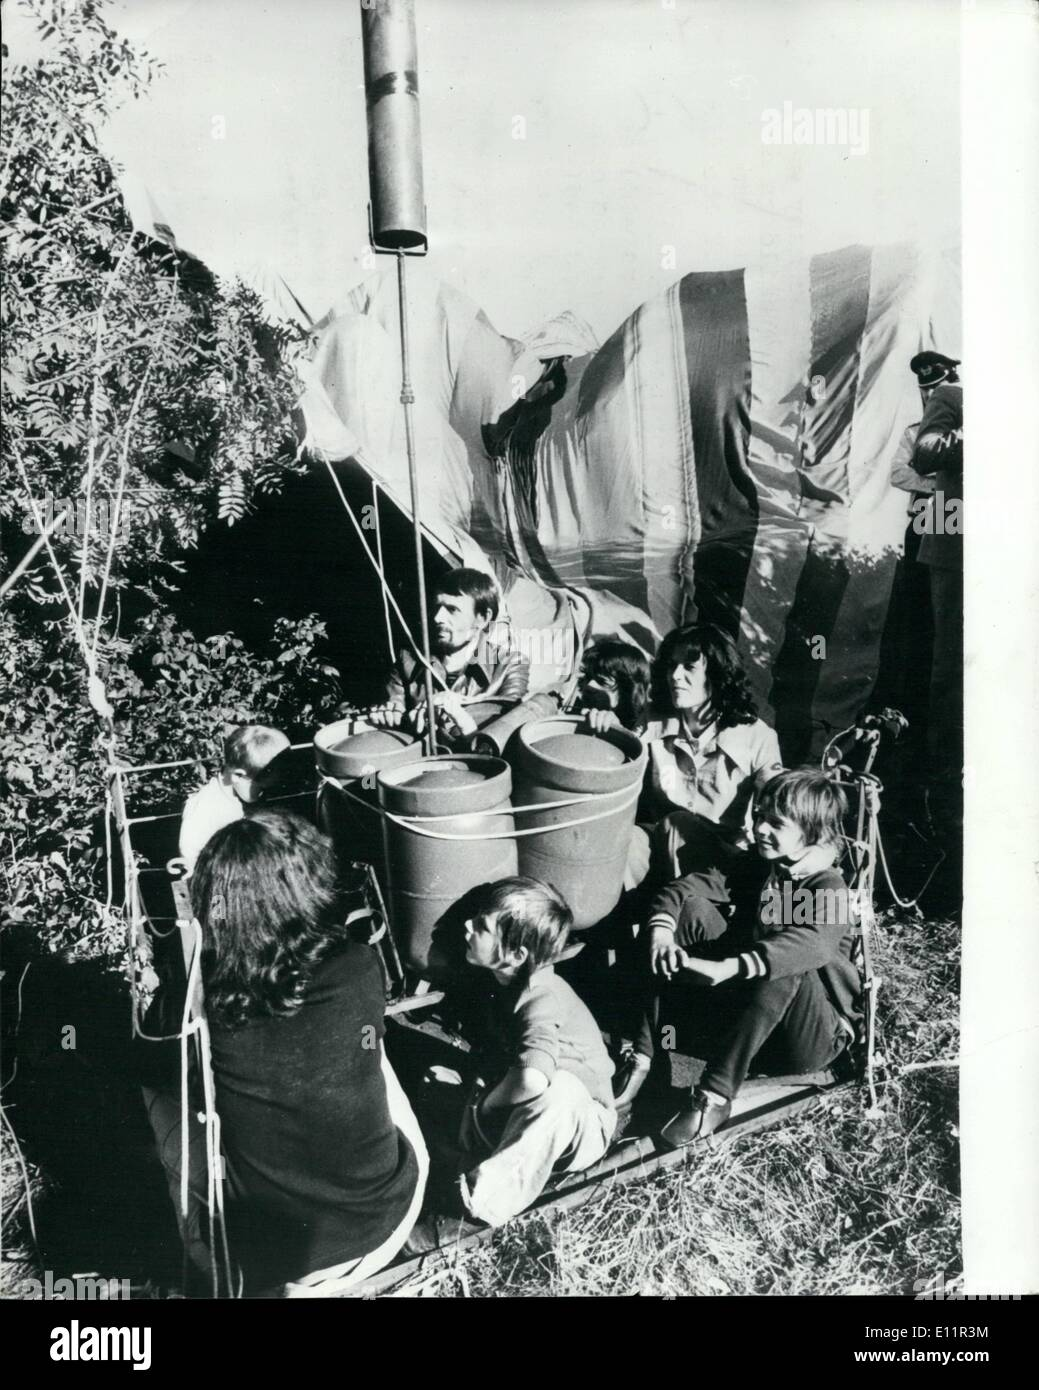 Sep. 09, 1979 - Families escape from East Germany in Home made hot air balloon: Two families made the most fantastic defection over by flying across the East German Border into West Germany in a home-made hot-air balloon. Four adults and four children, the youngest only two years, made a 30 minutes flight to freedom on a wooden platform only 4 1/2 ft. square. The balloon envelope, 137ft. high and 114ft. across stitched together by the two wives from nylon sheets and curtains the East German village of Possack, in the provice of Thuringia, Six miles south lay the border, Bavaria and freedom - Stock Image